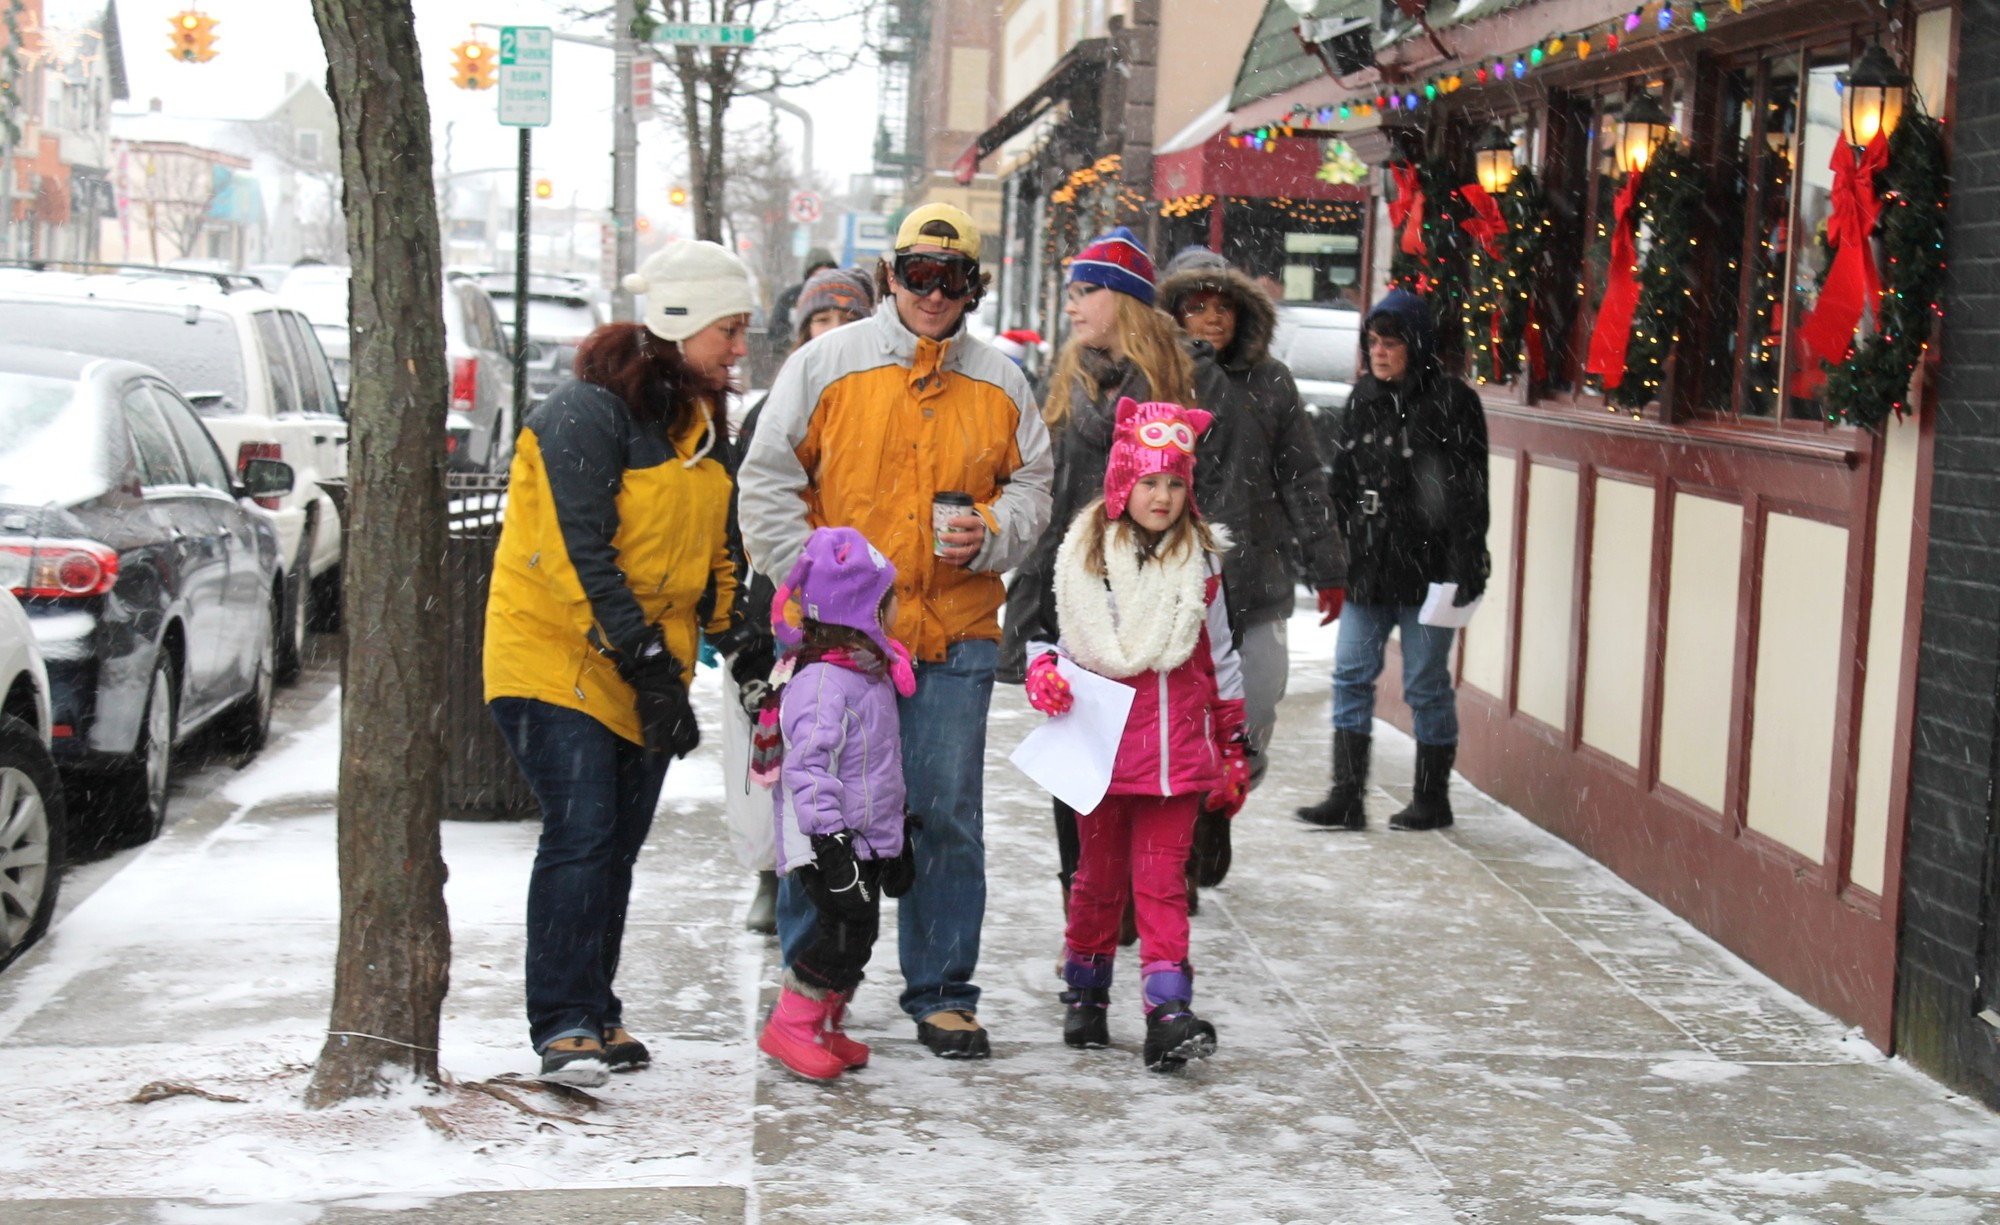 The snowstorm couldn't stop the Elf Crawl, which sent kids on a scavenger hunt through the West End.